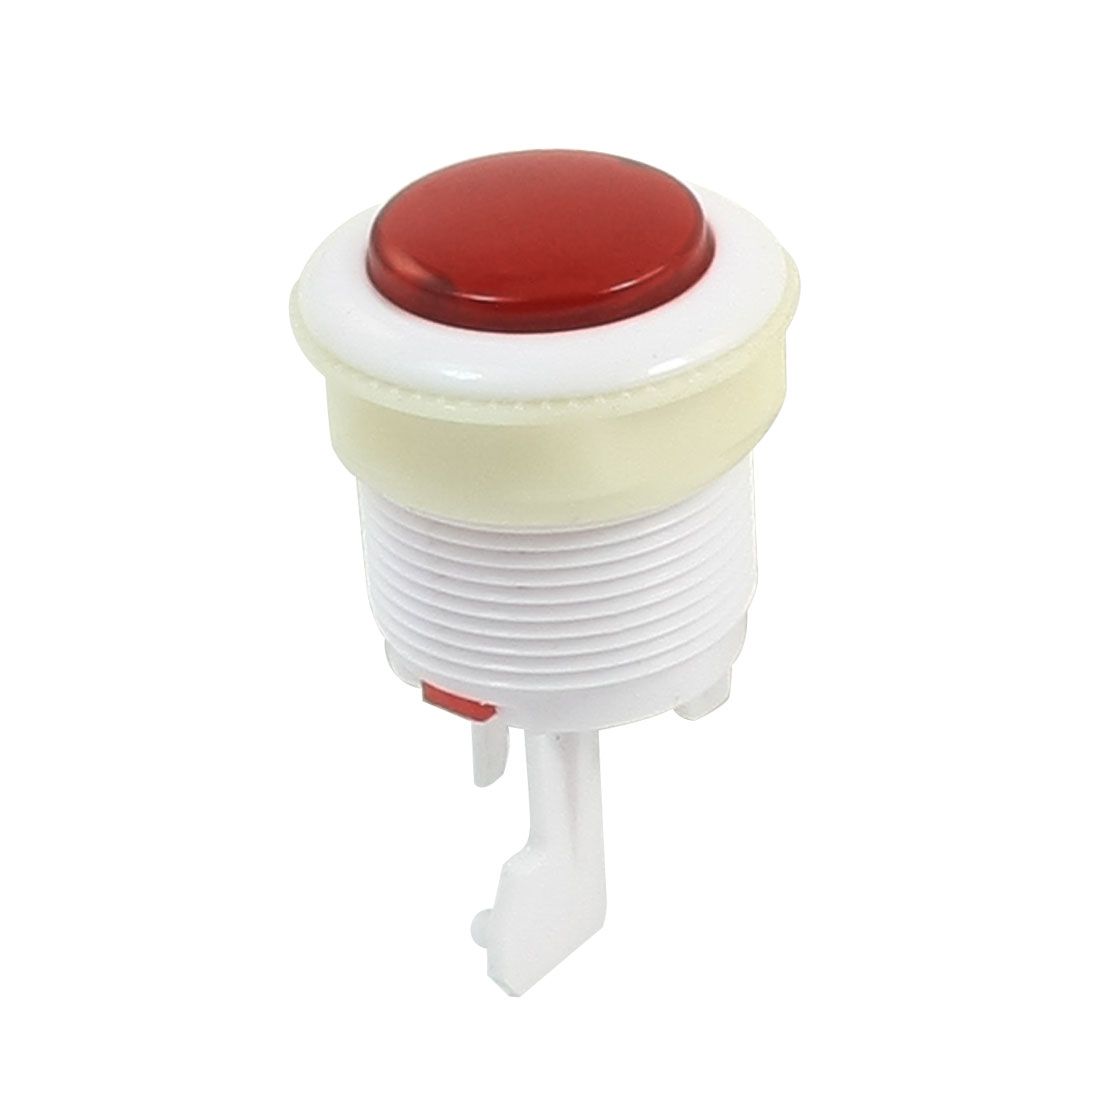 28mm Thread Panel Mounting White Red Plastic Round Push Button for Arcade Game